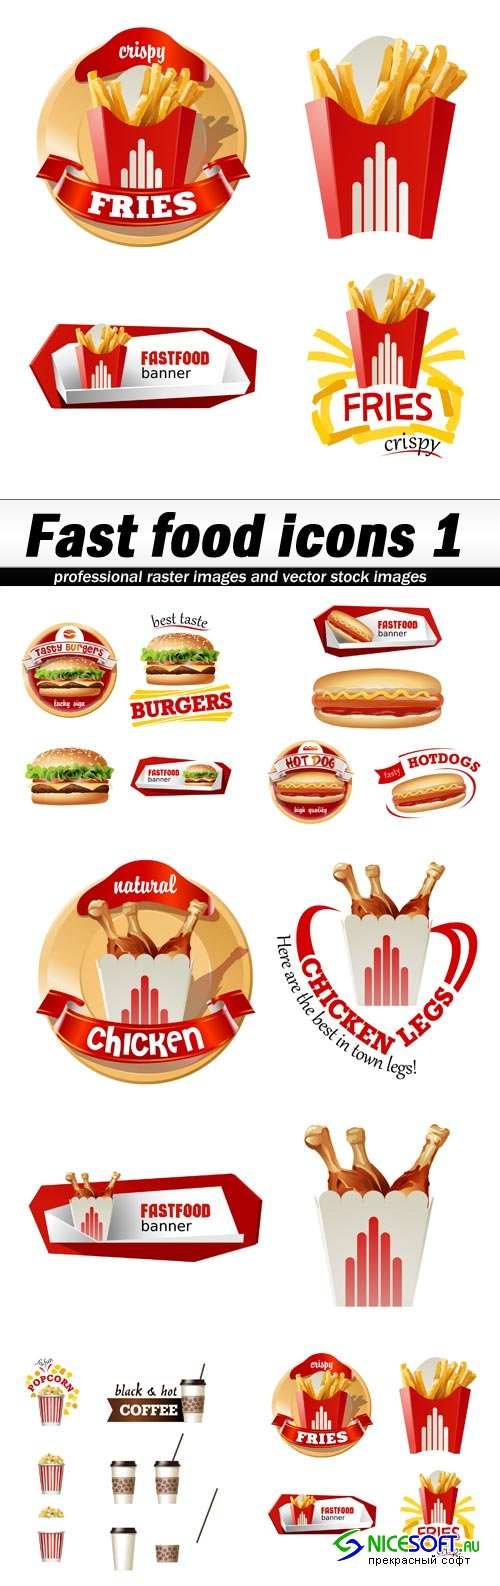 Fast food icons 1 - 5 EPS